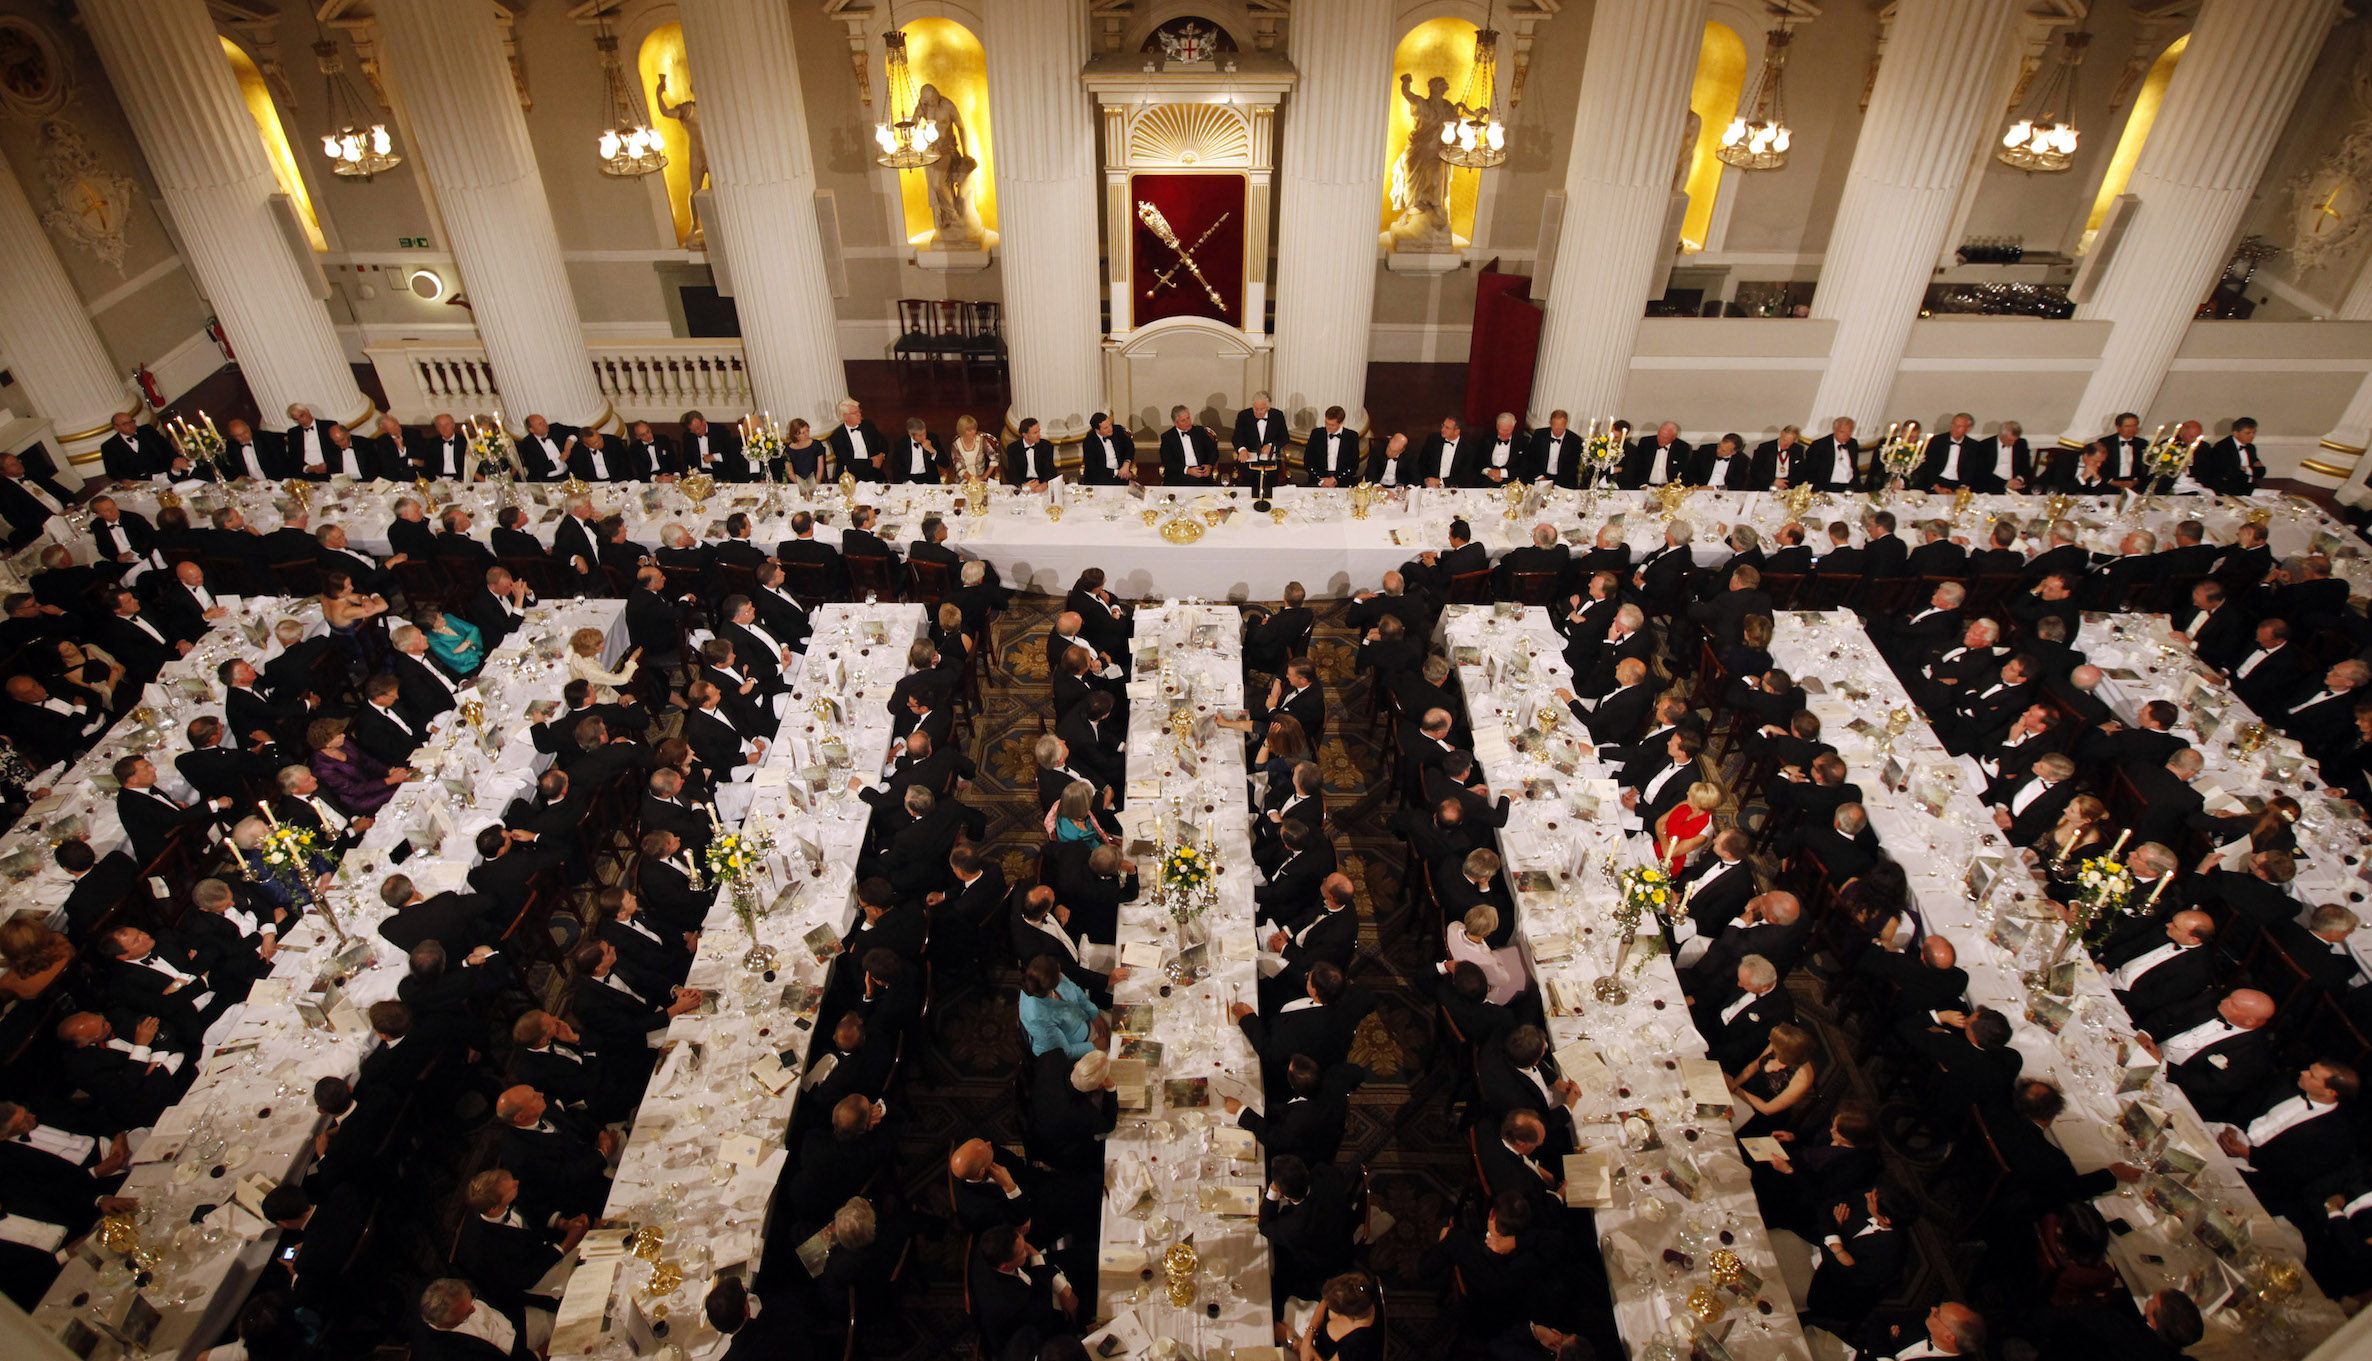 Bank of England Governor Mervyn King speaks at the Lord Mayor's dinner to the Bankers and Merchants of the City of London at Mansion House in London June 16, 2010. REUTERS/Suzanne Plunkett (BRITAIN - Tags: BUSINESS) - RTR2F9SE